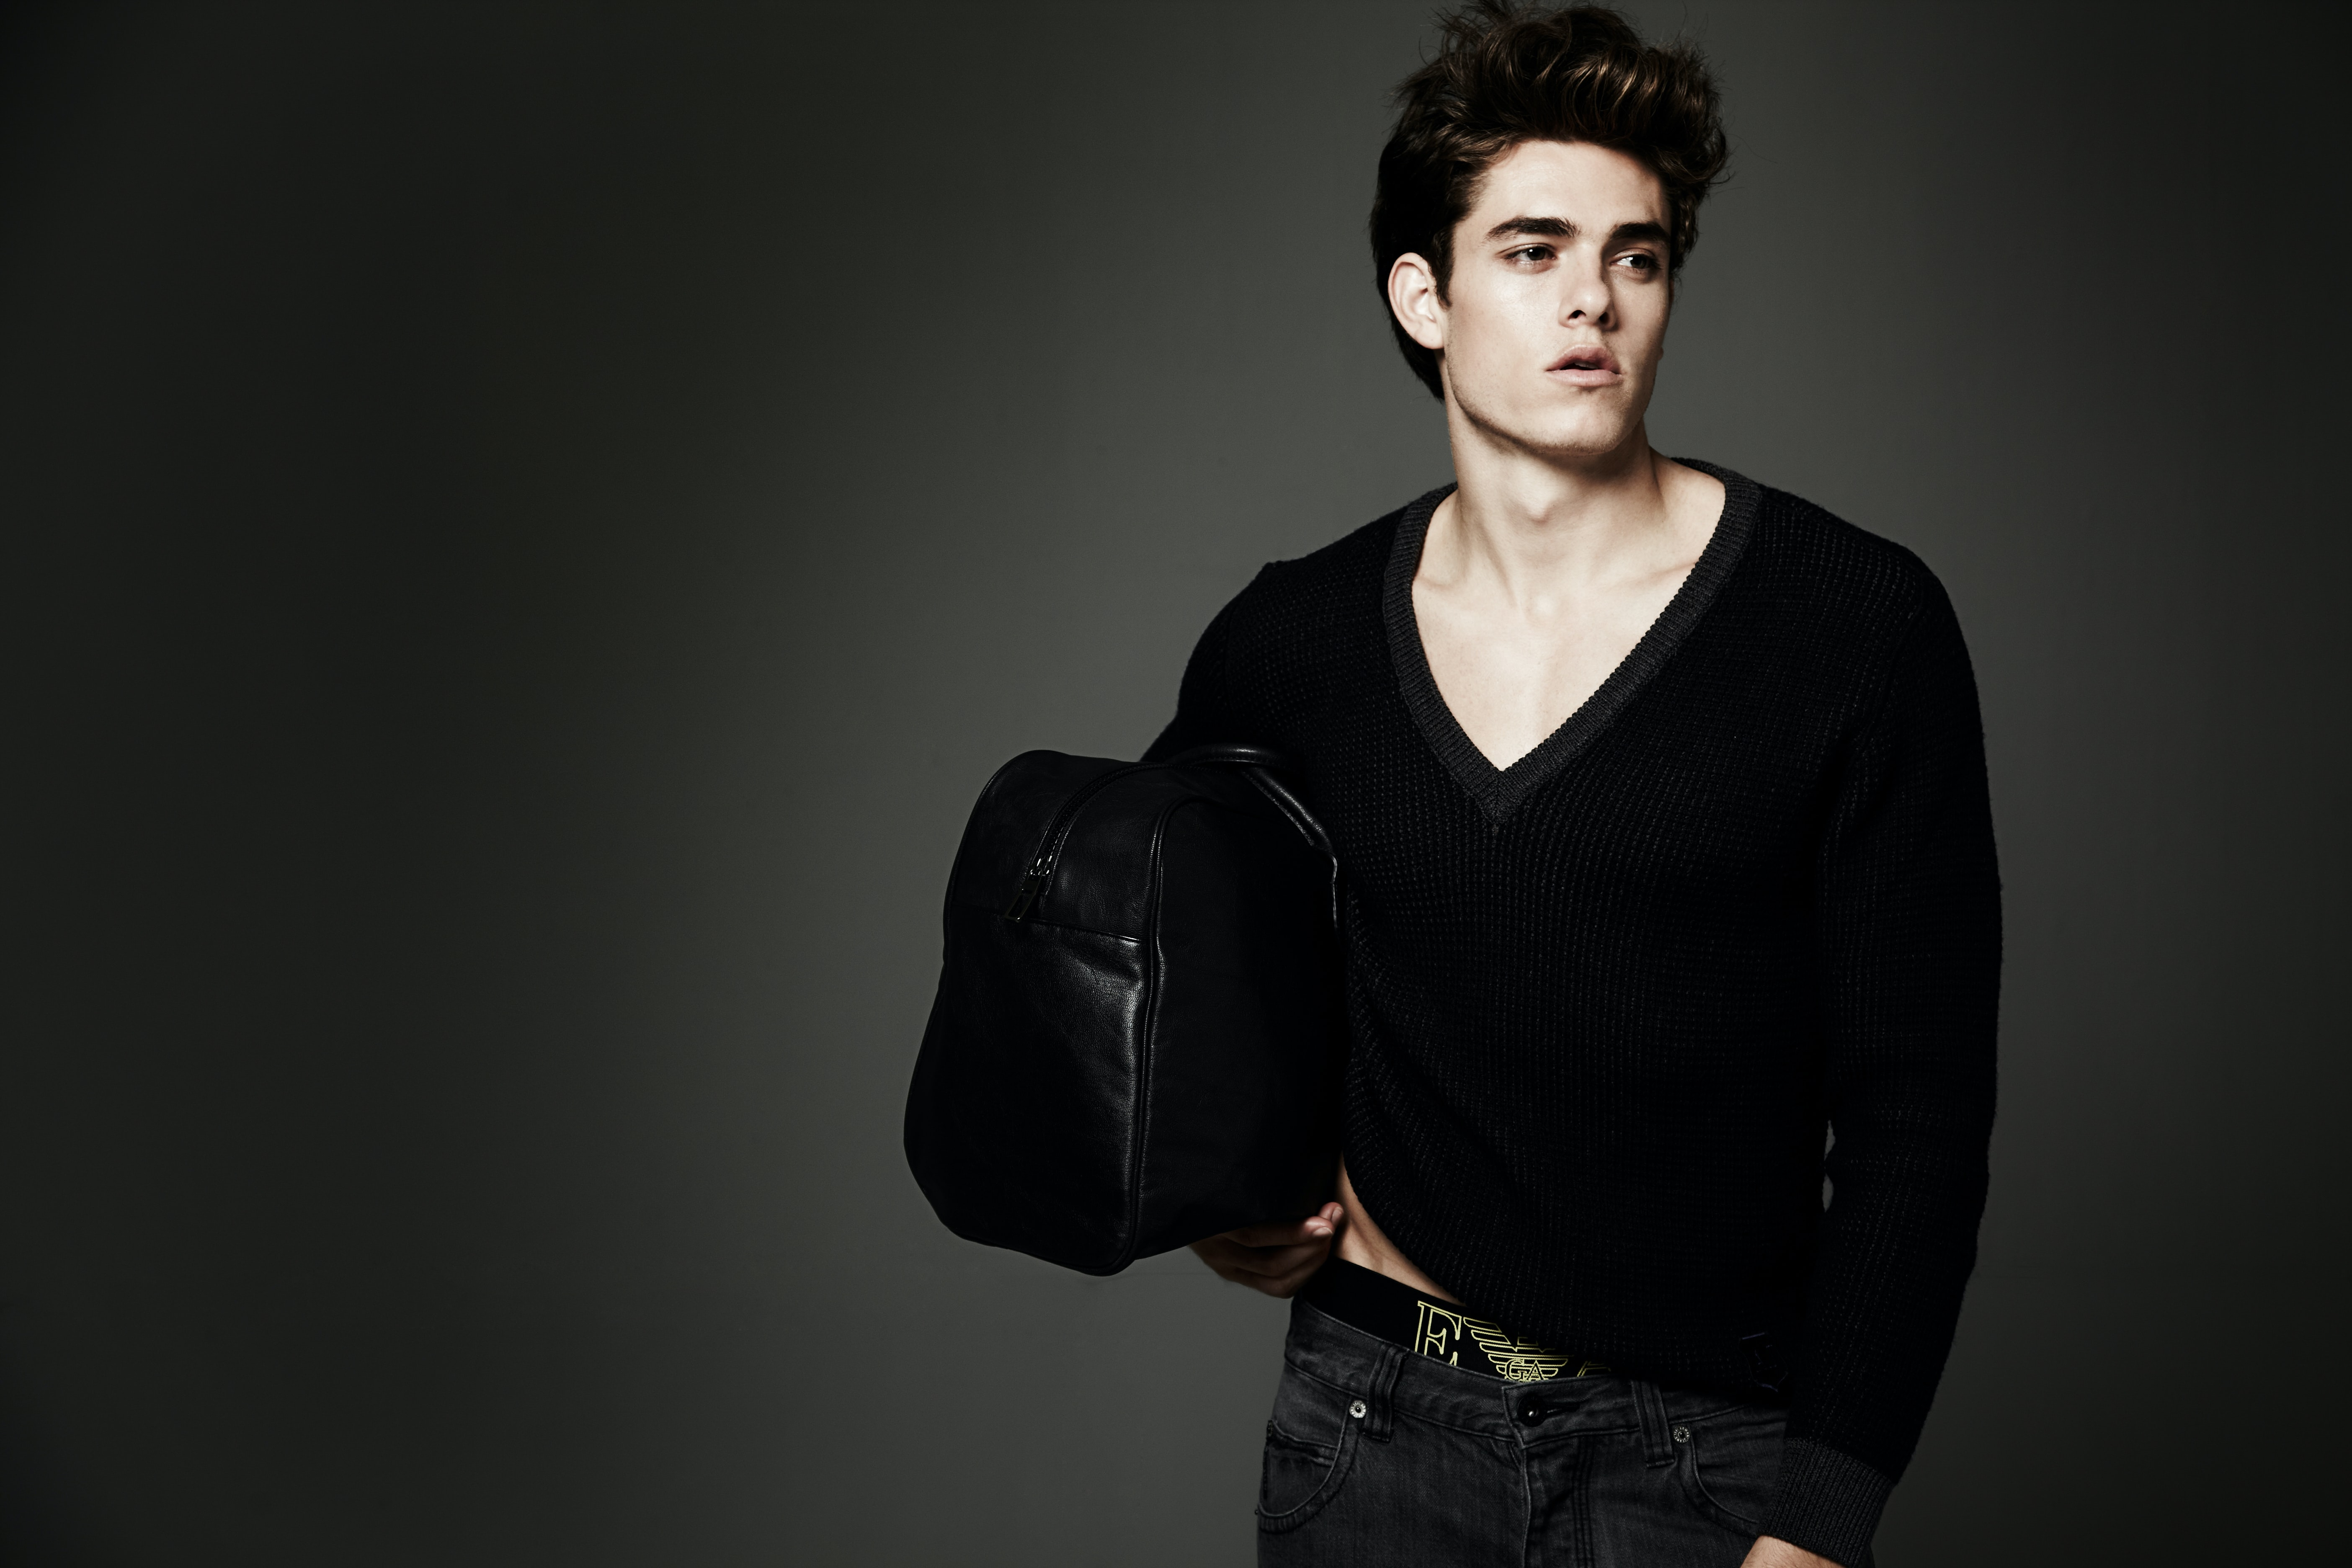 man holding leather bag posing for a photo shoot